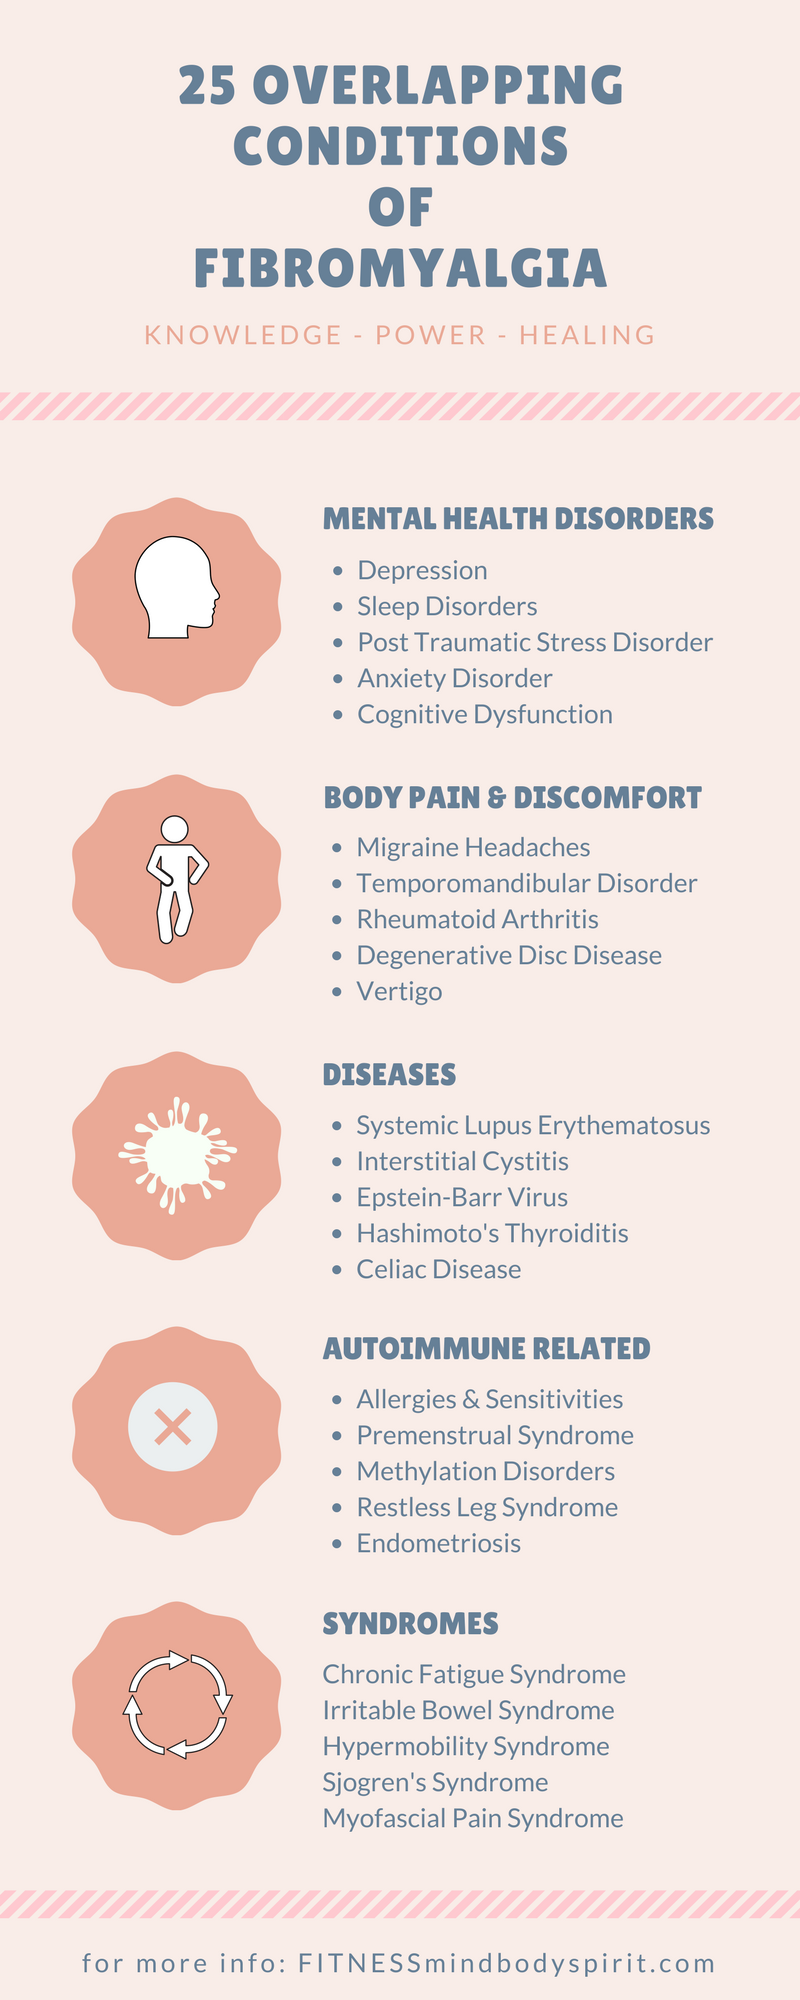 Overlapping Conditions of Fibromyalgia